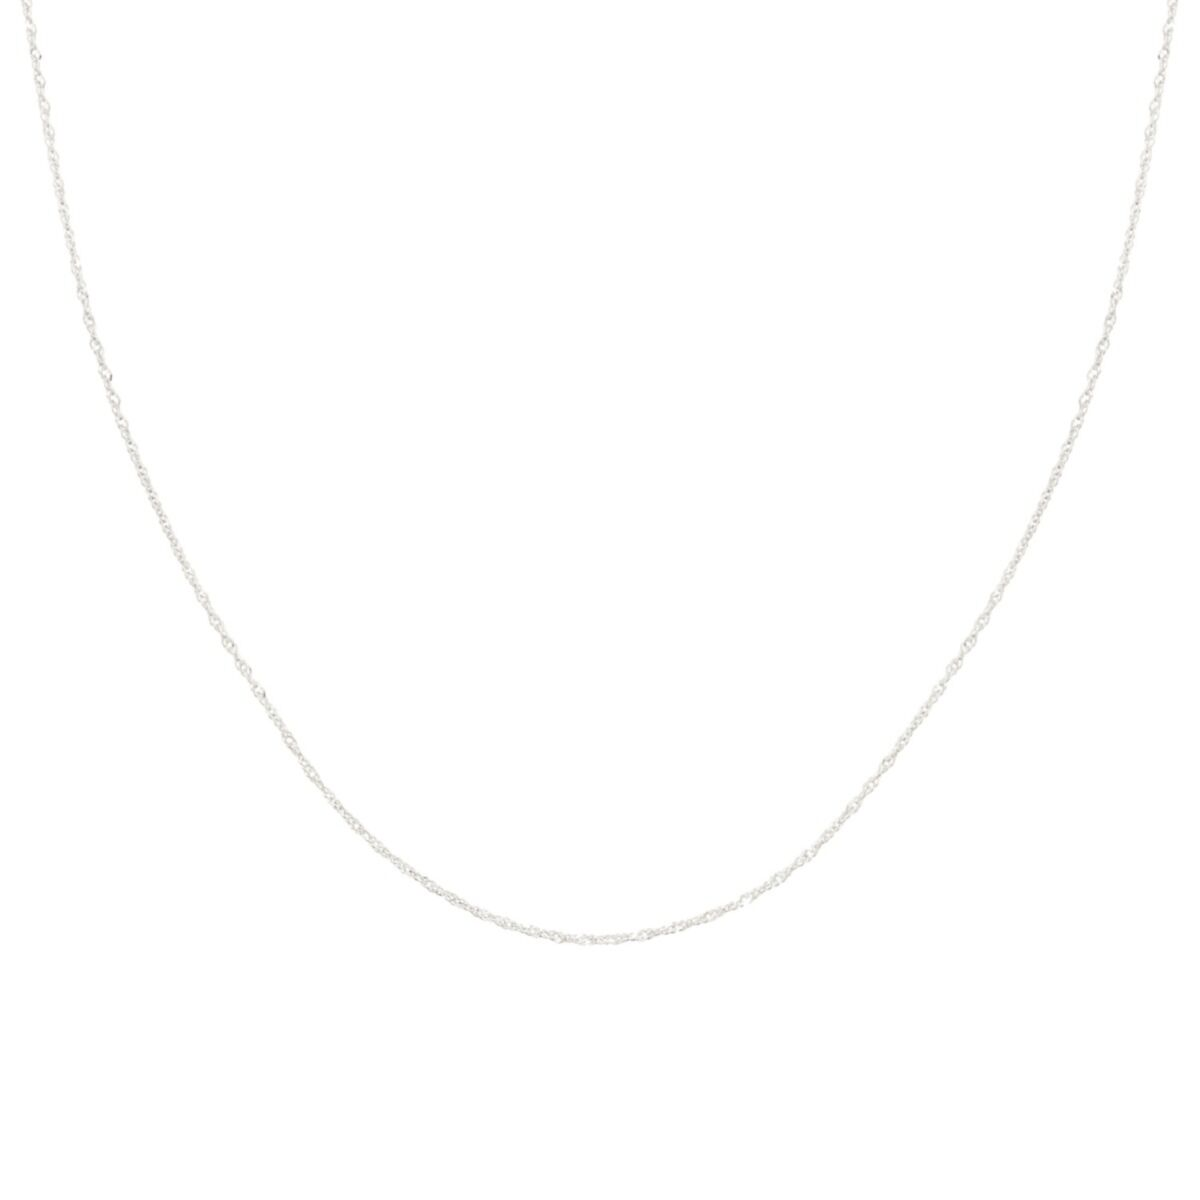 Adjustable Sweet Nothing Chain, Silver image